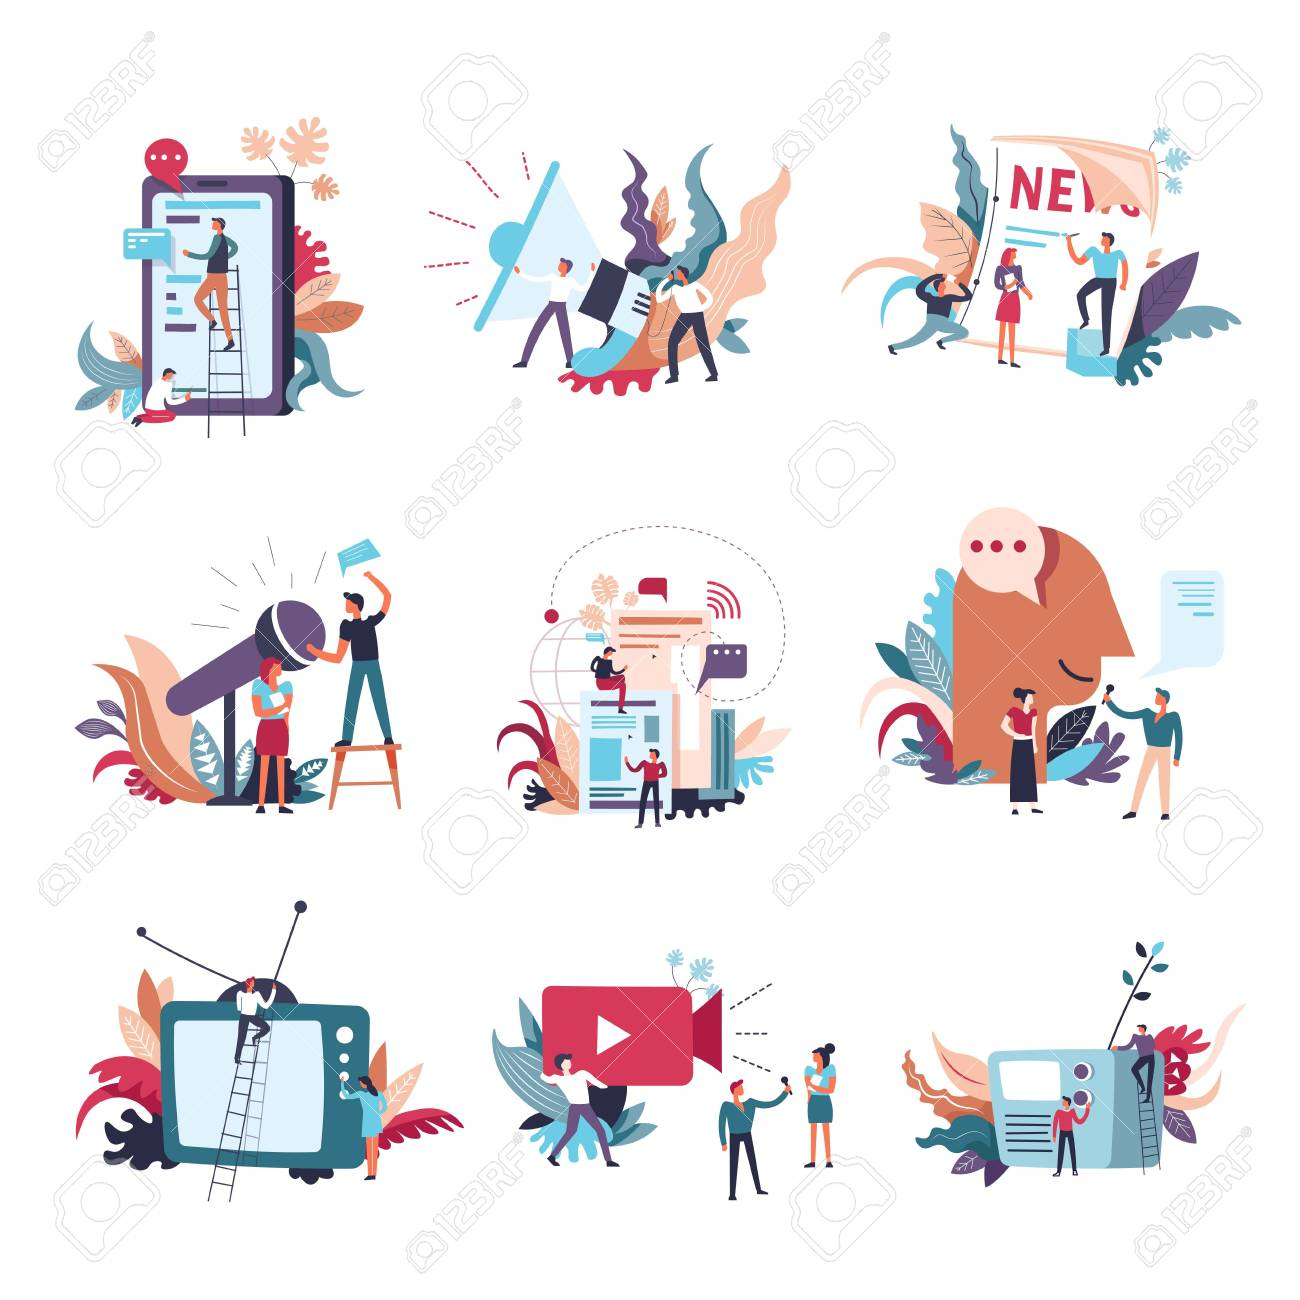 Journalism, mass media news and information conceptual icons. Vector small people with newspaper or TV and radio on journalist and reporter video interview and megaphone announce - 110407027